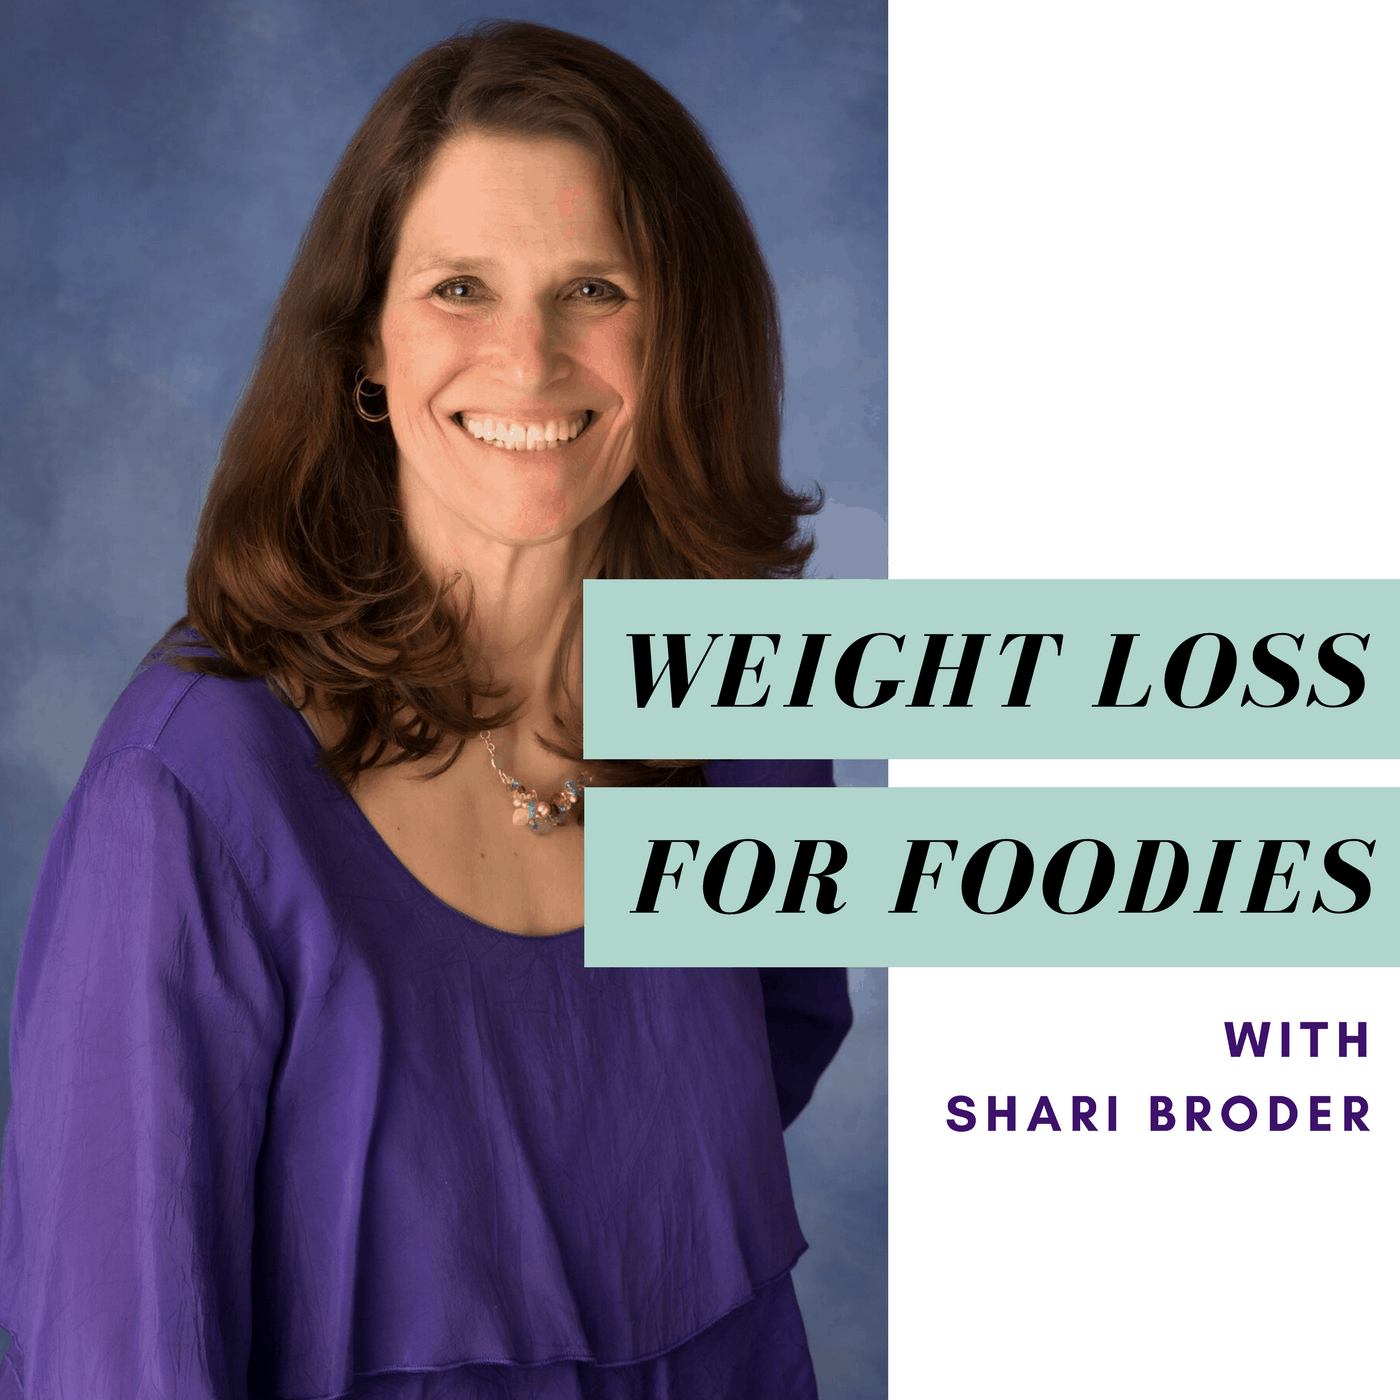 The Weight Loss for Foodies Podcast With Shari Broder